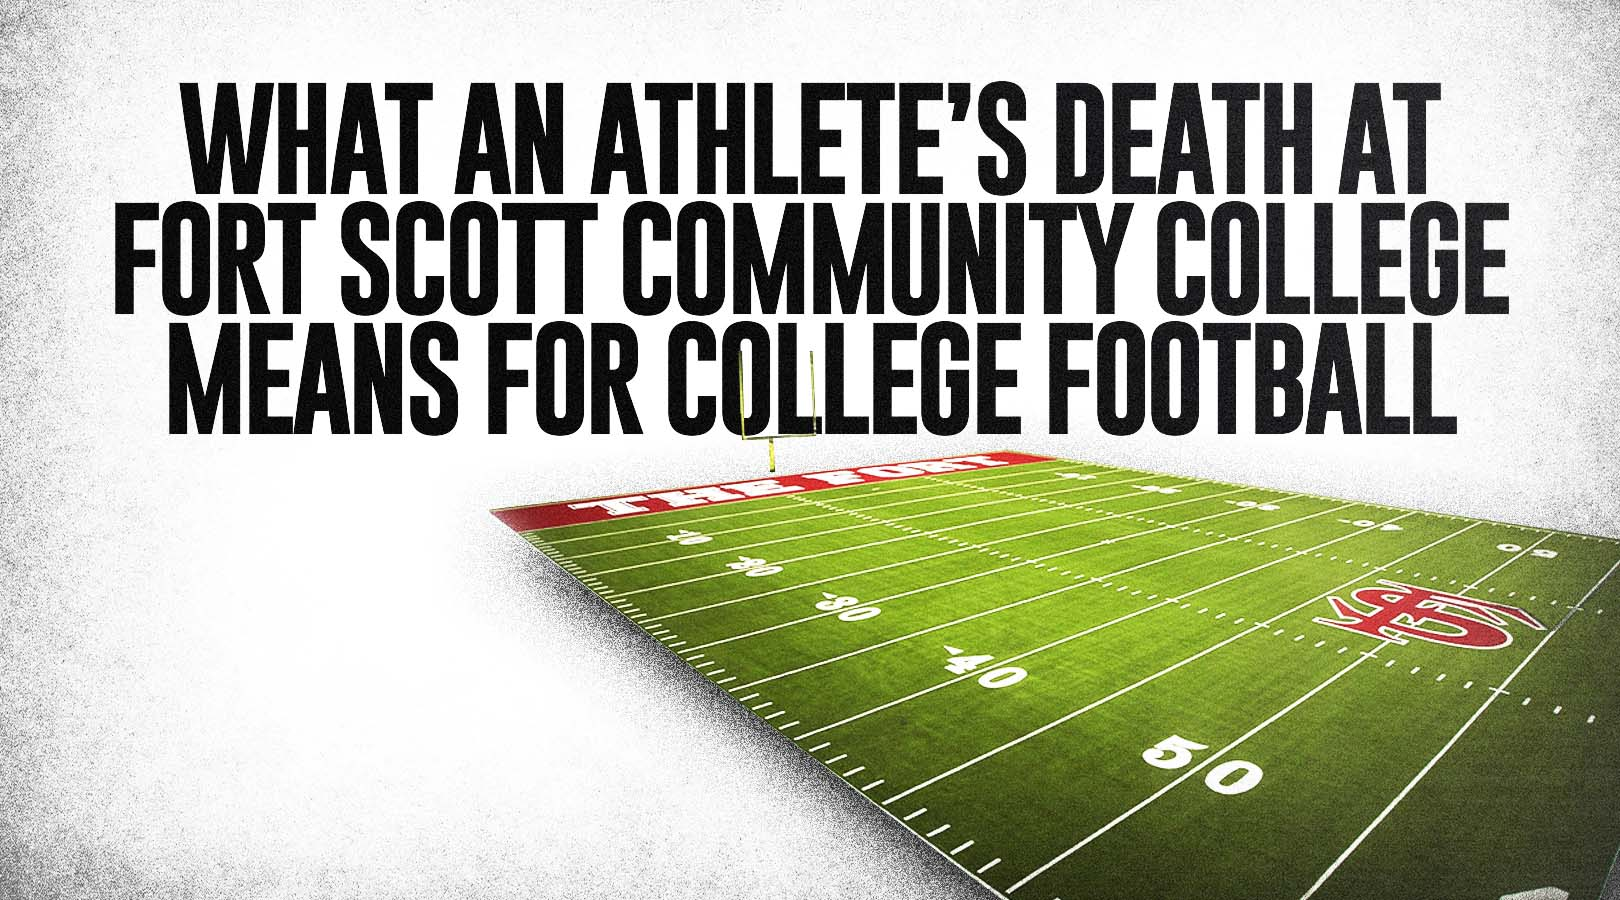 What An Athlete's Death At Fort Scott Community College Means For College Football